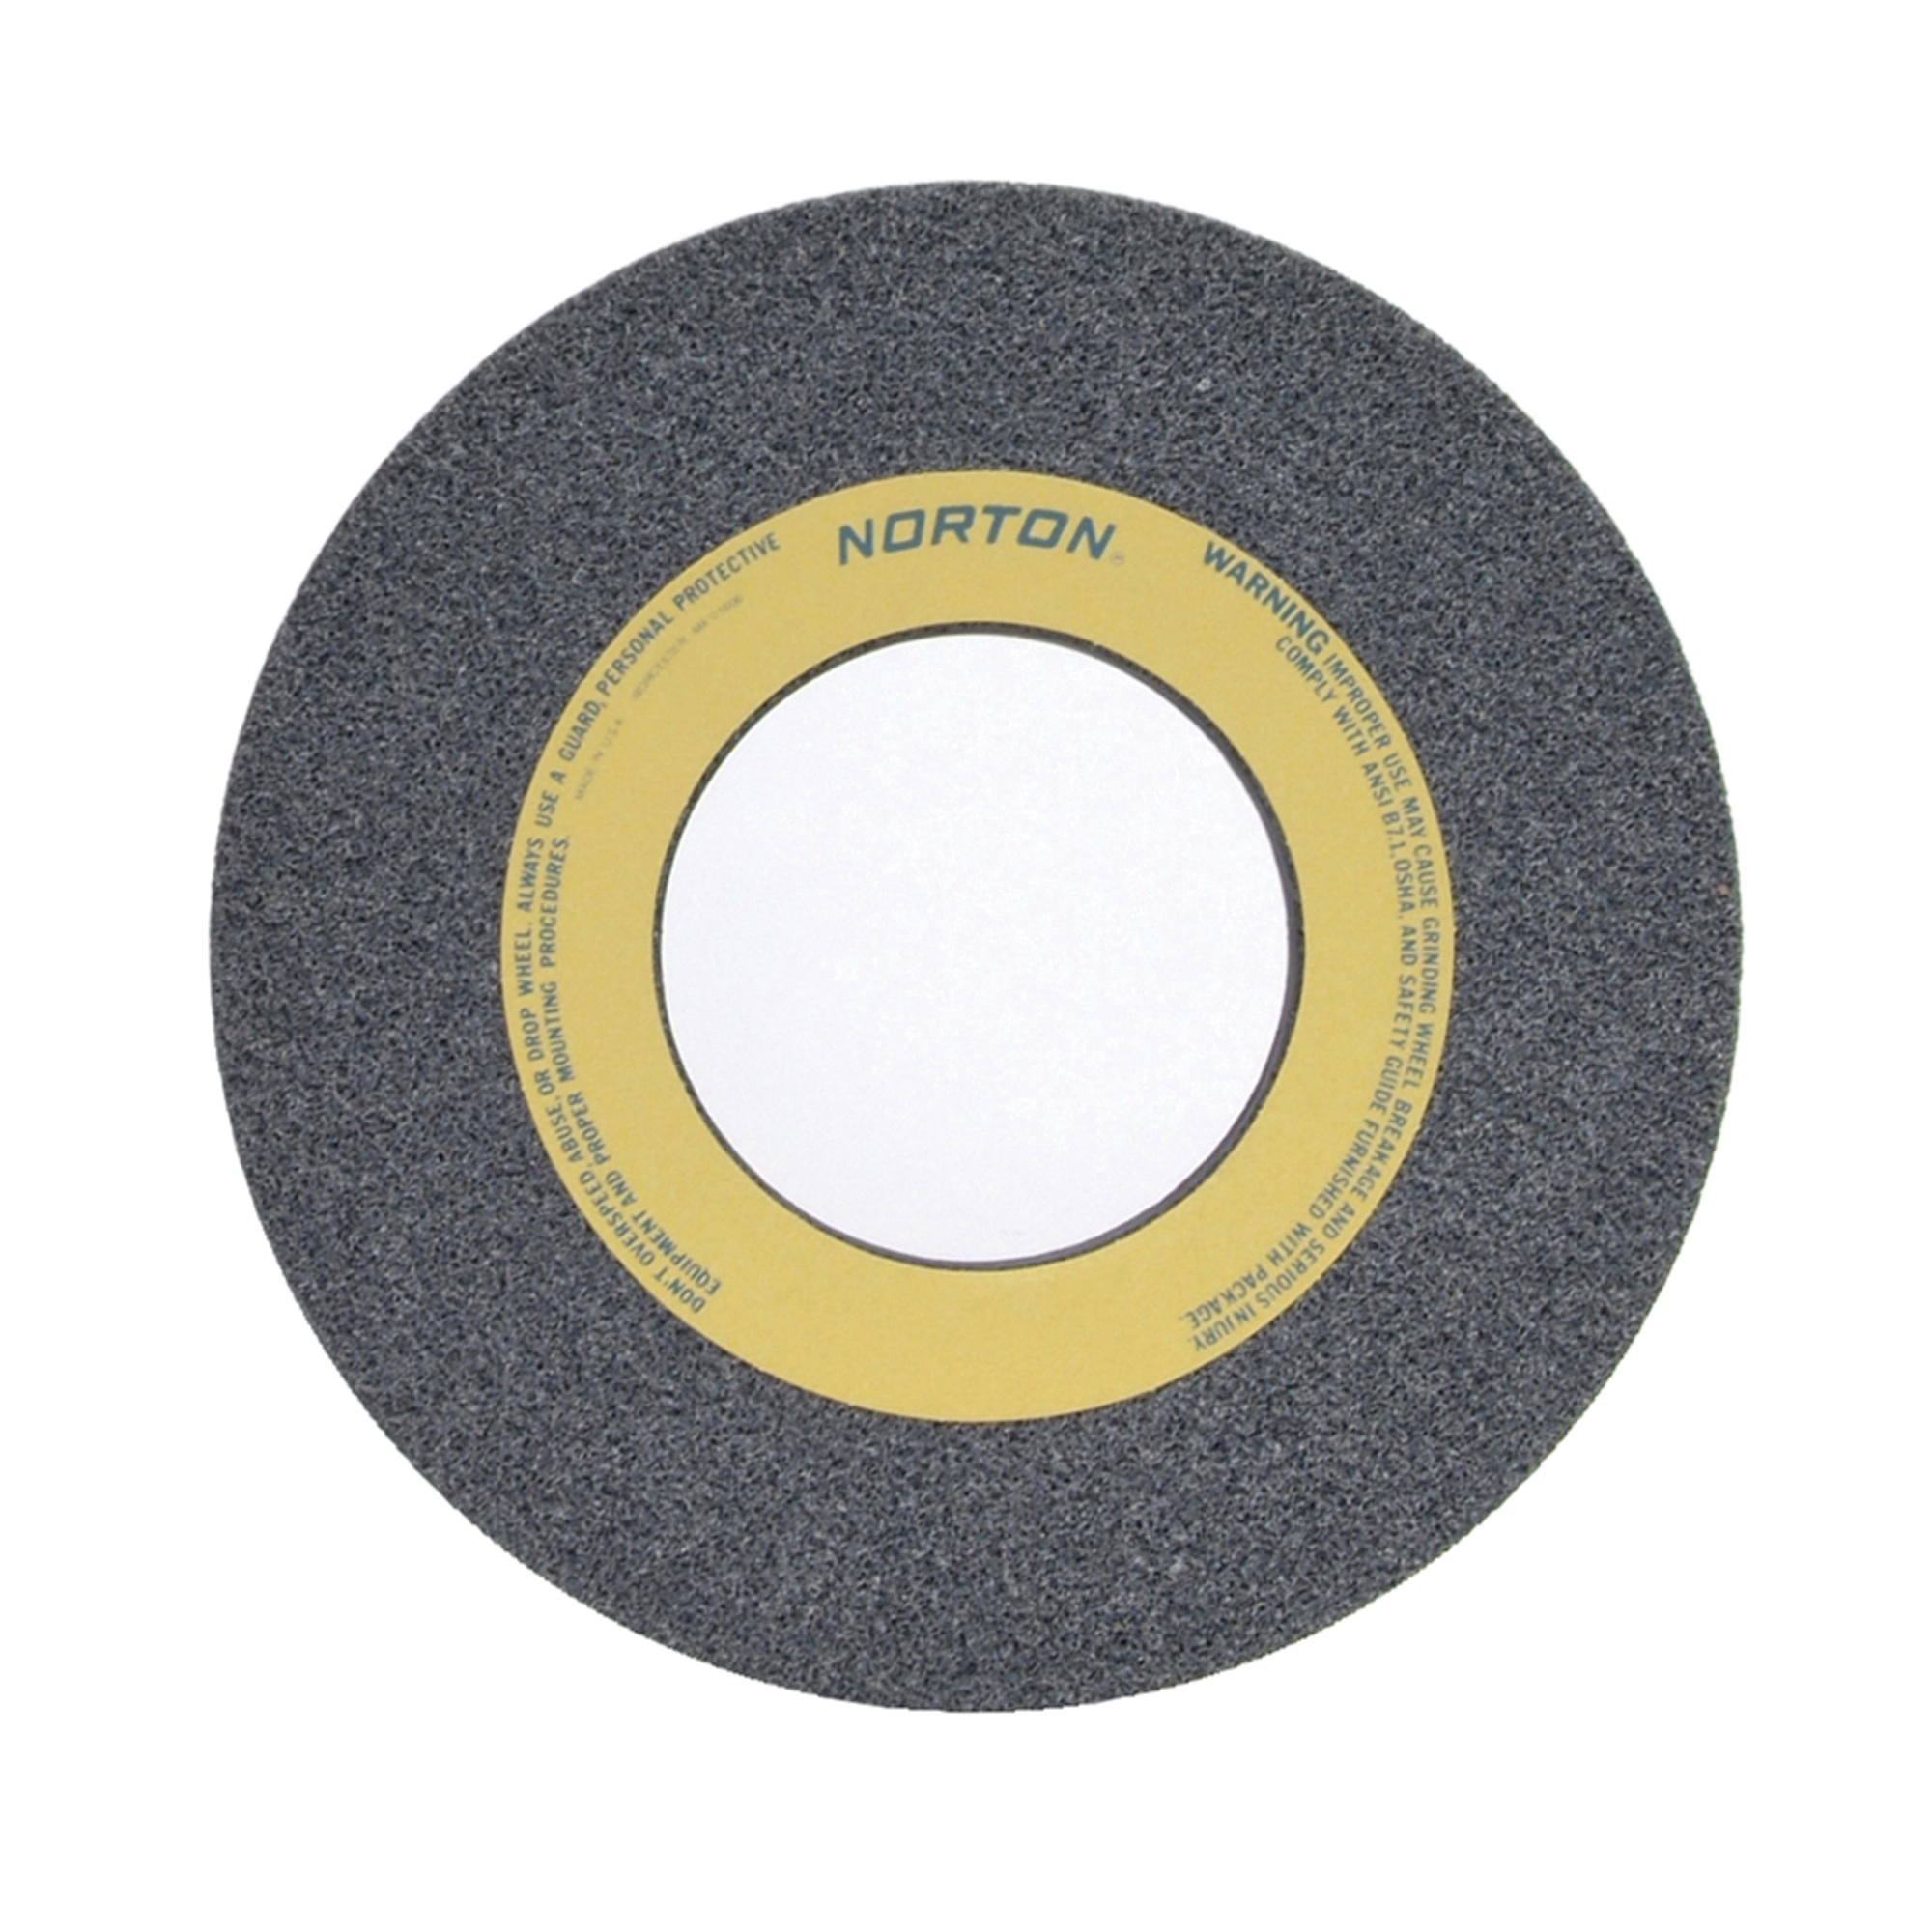 Norton® 66253364340 32A Straight Toolroom Wheel, 14 in Dia x 1-1/2 in THK, 5 in Center Hole, 60 Grit, Aluminum Oxide Abrasive